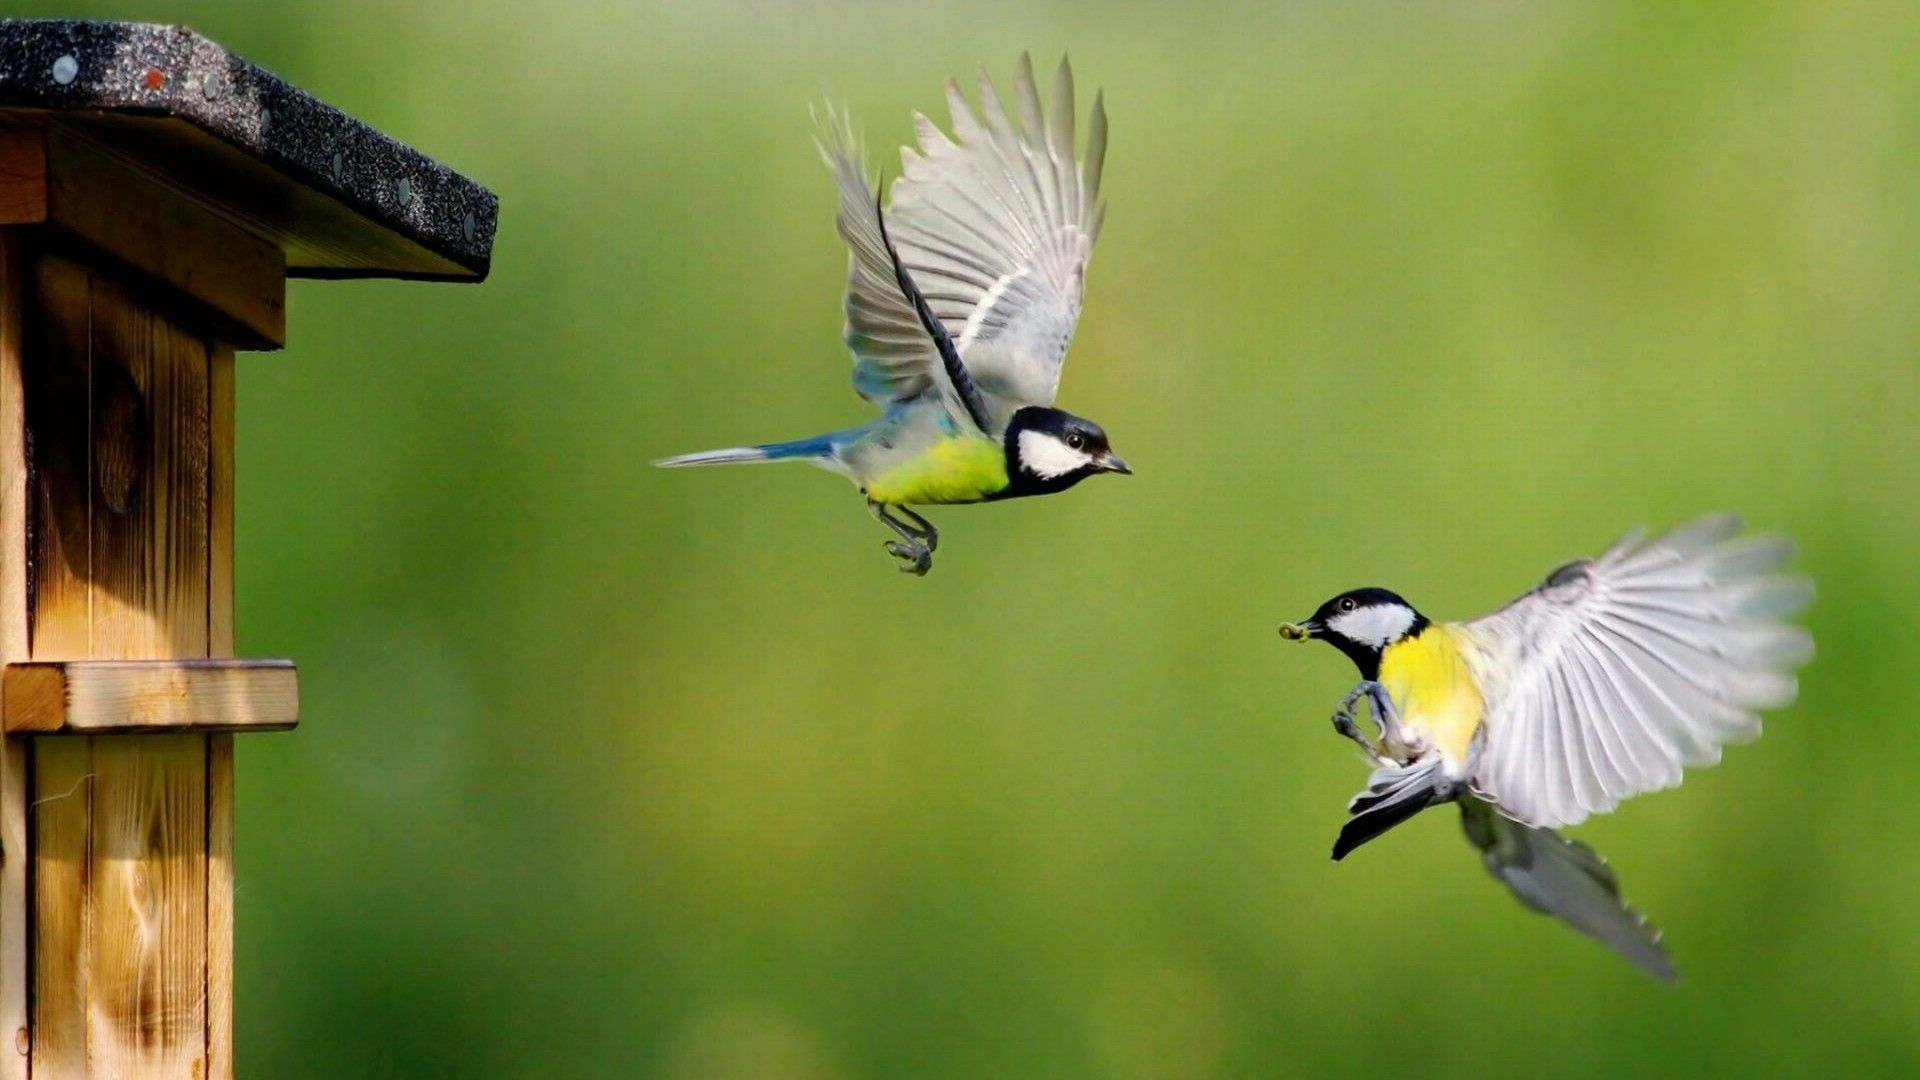 Bluetit Cute Birds Wallpaper for desktop and mobile in